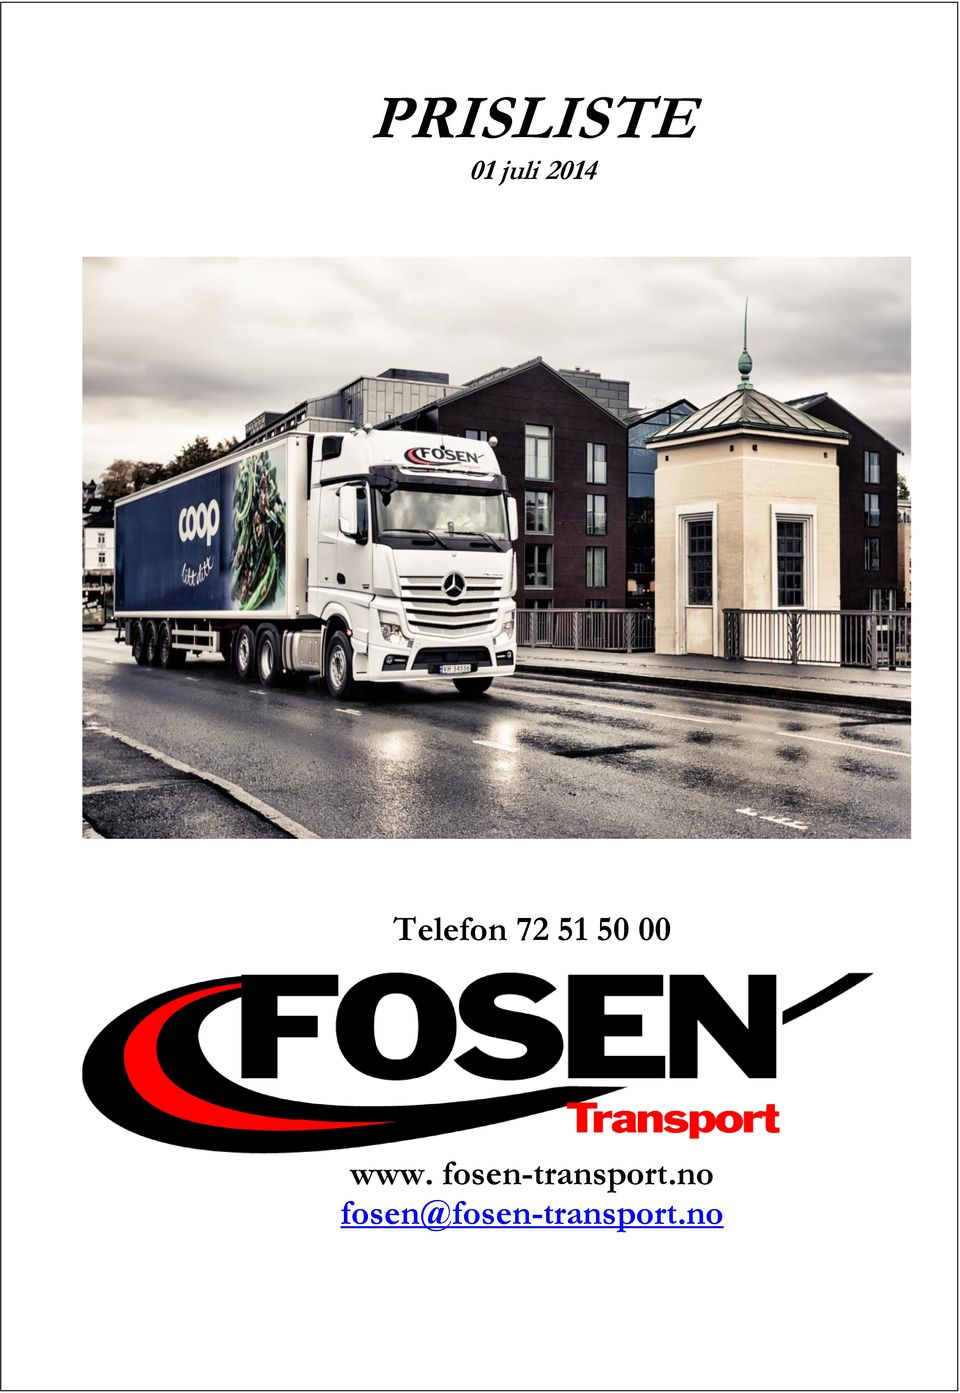 www. fosen-transport.